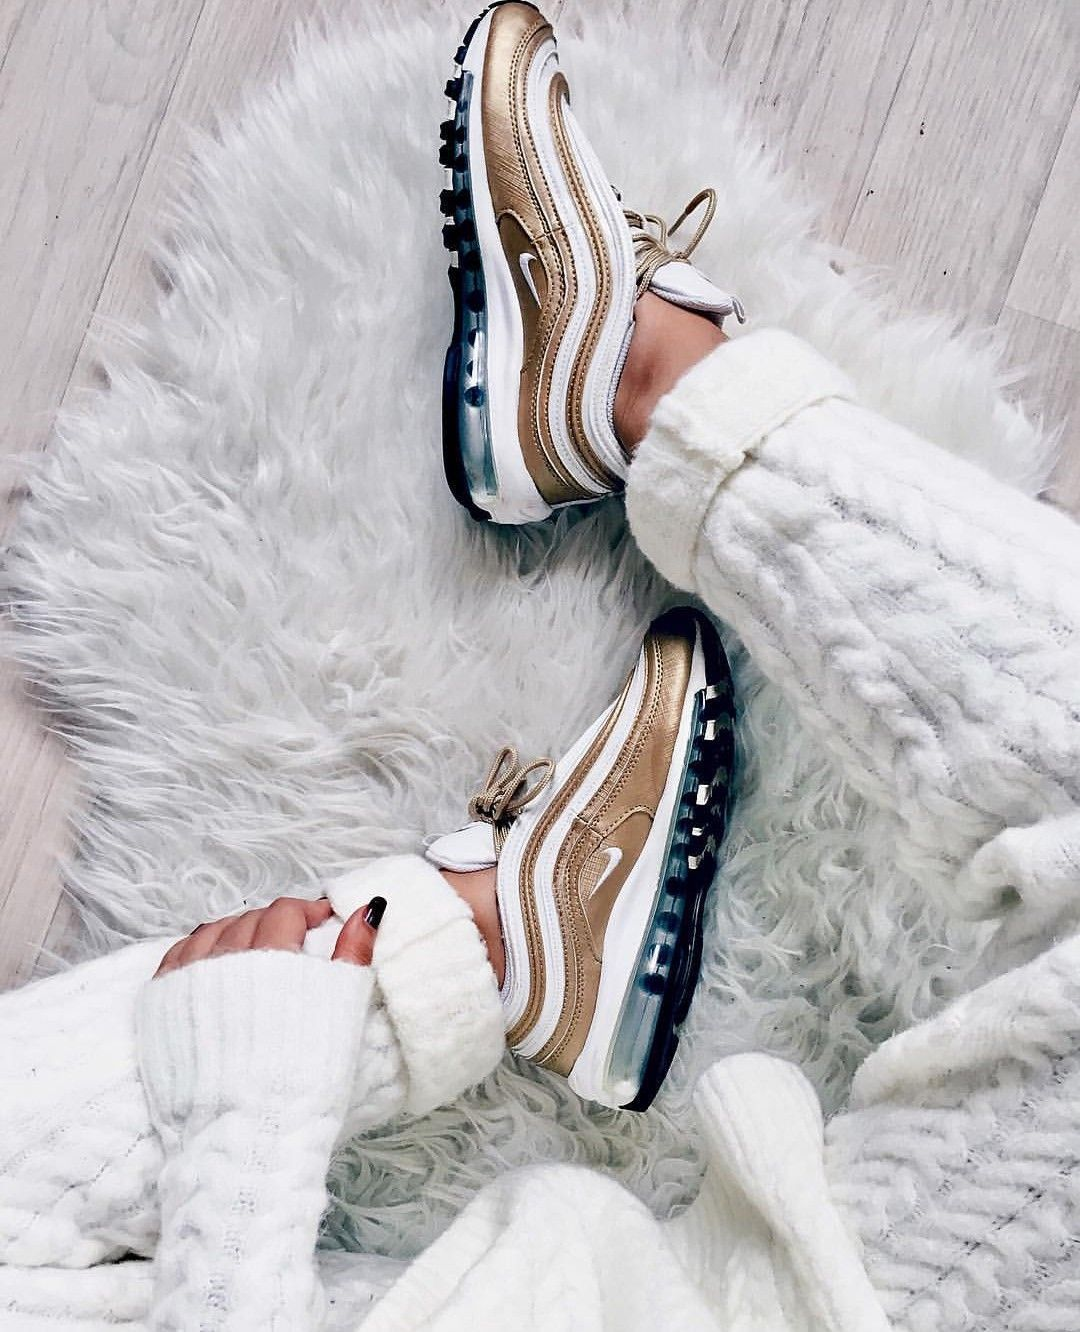 Nike Air Max 97 in goldwhite Foto: nawellleee (Instagram